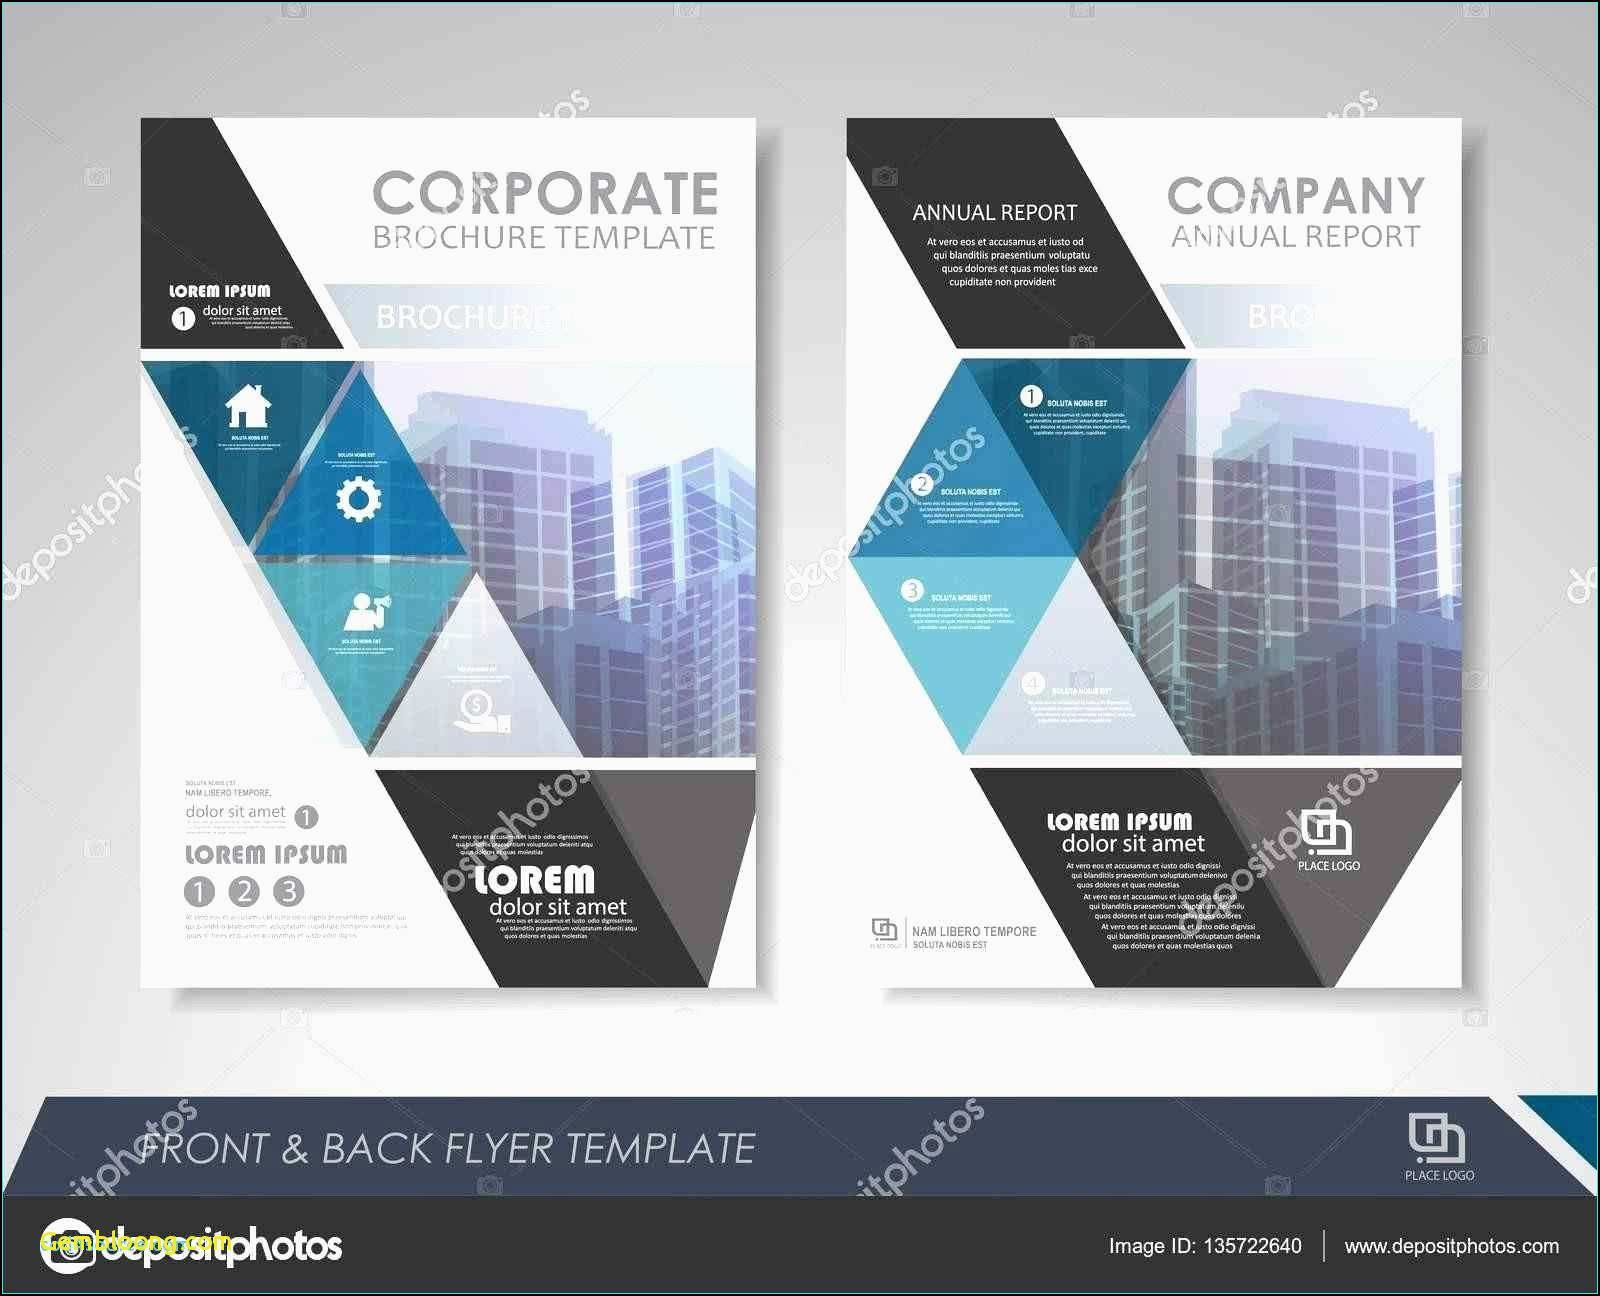 003 Remarkable Indesign A4 Brochure Template Free Download Sample Full